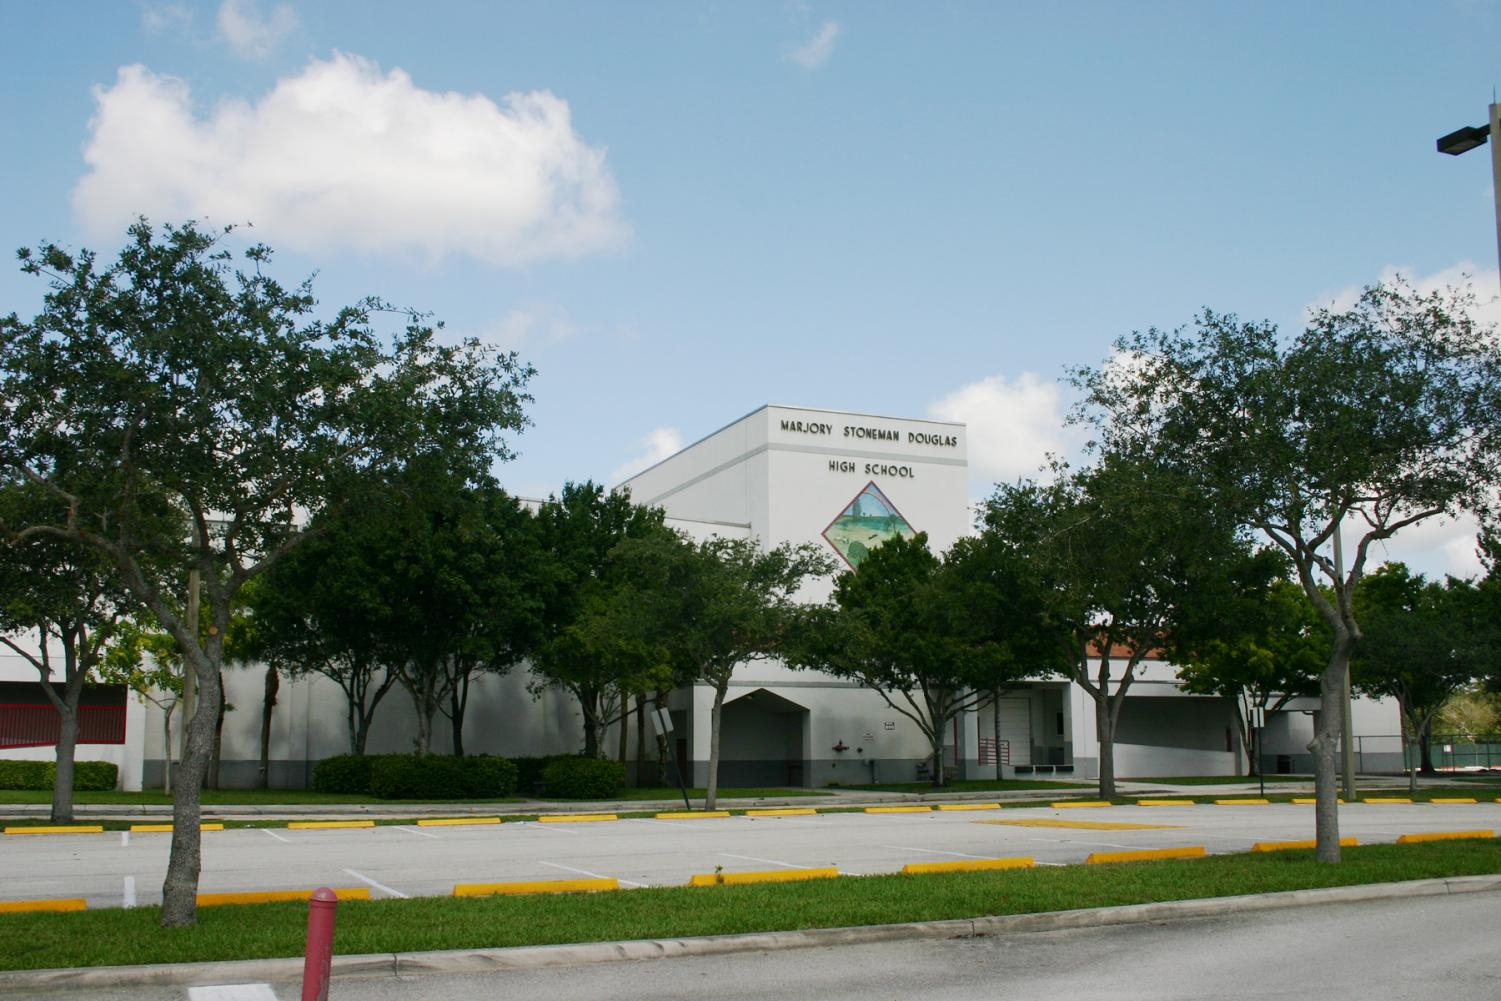 After the mass shooting at Marjory Stoneman Douglas High School, the school will be closed at least through the weekend. This shooting left 17 people dead and 14 injured.